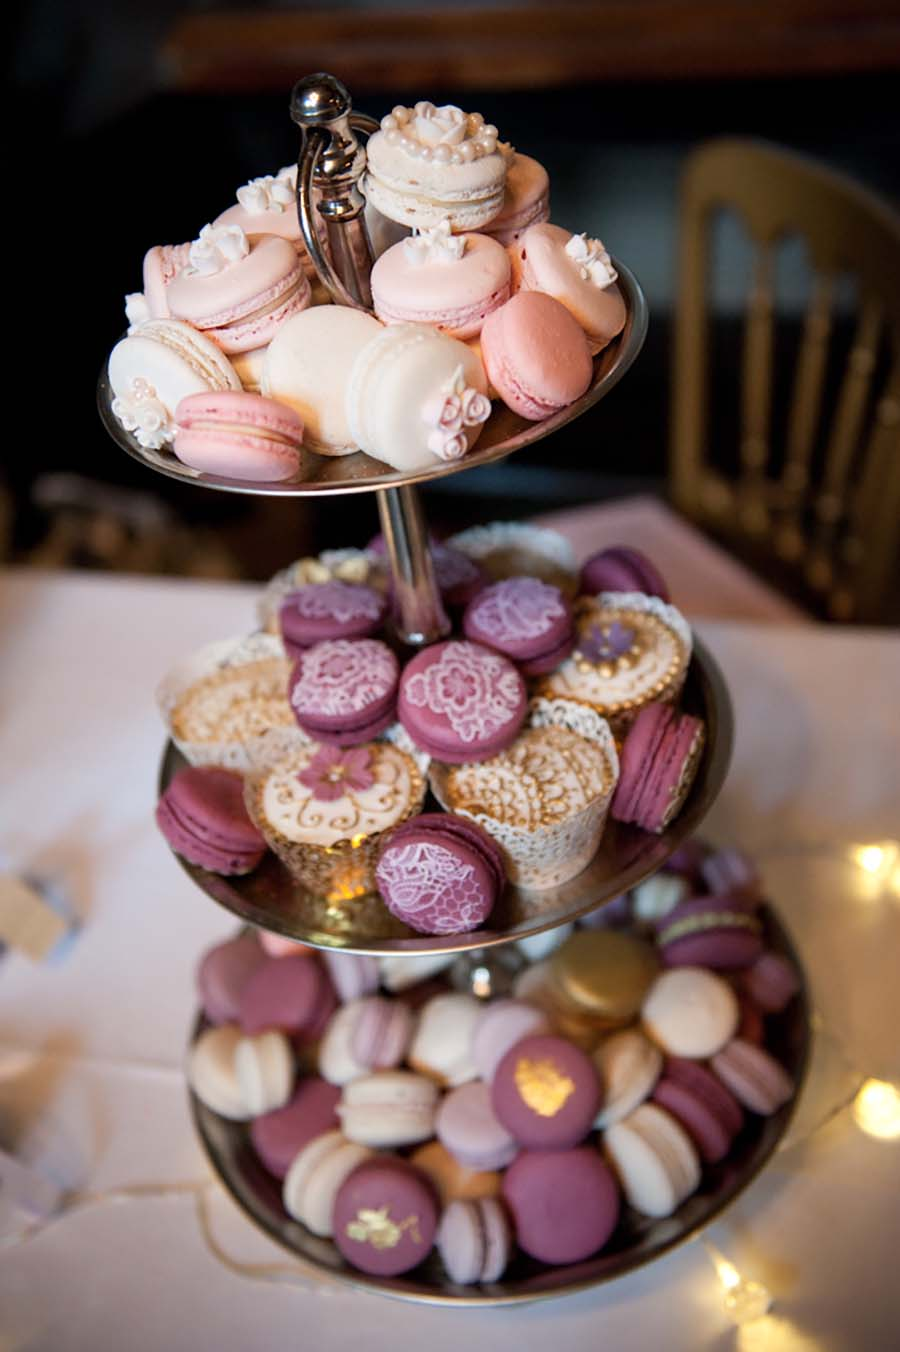 Buckinghams-at-belvoir-castle-wedding-fair-rachael-connerton-photography-71